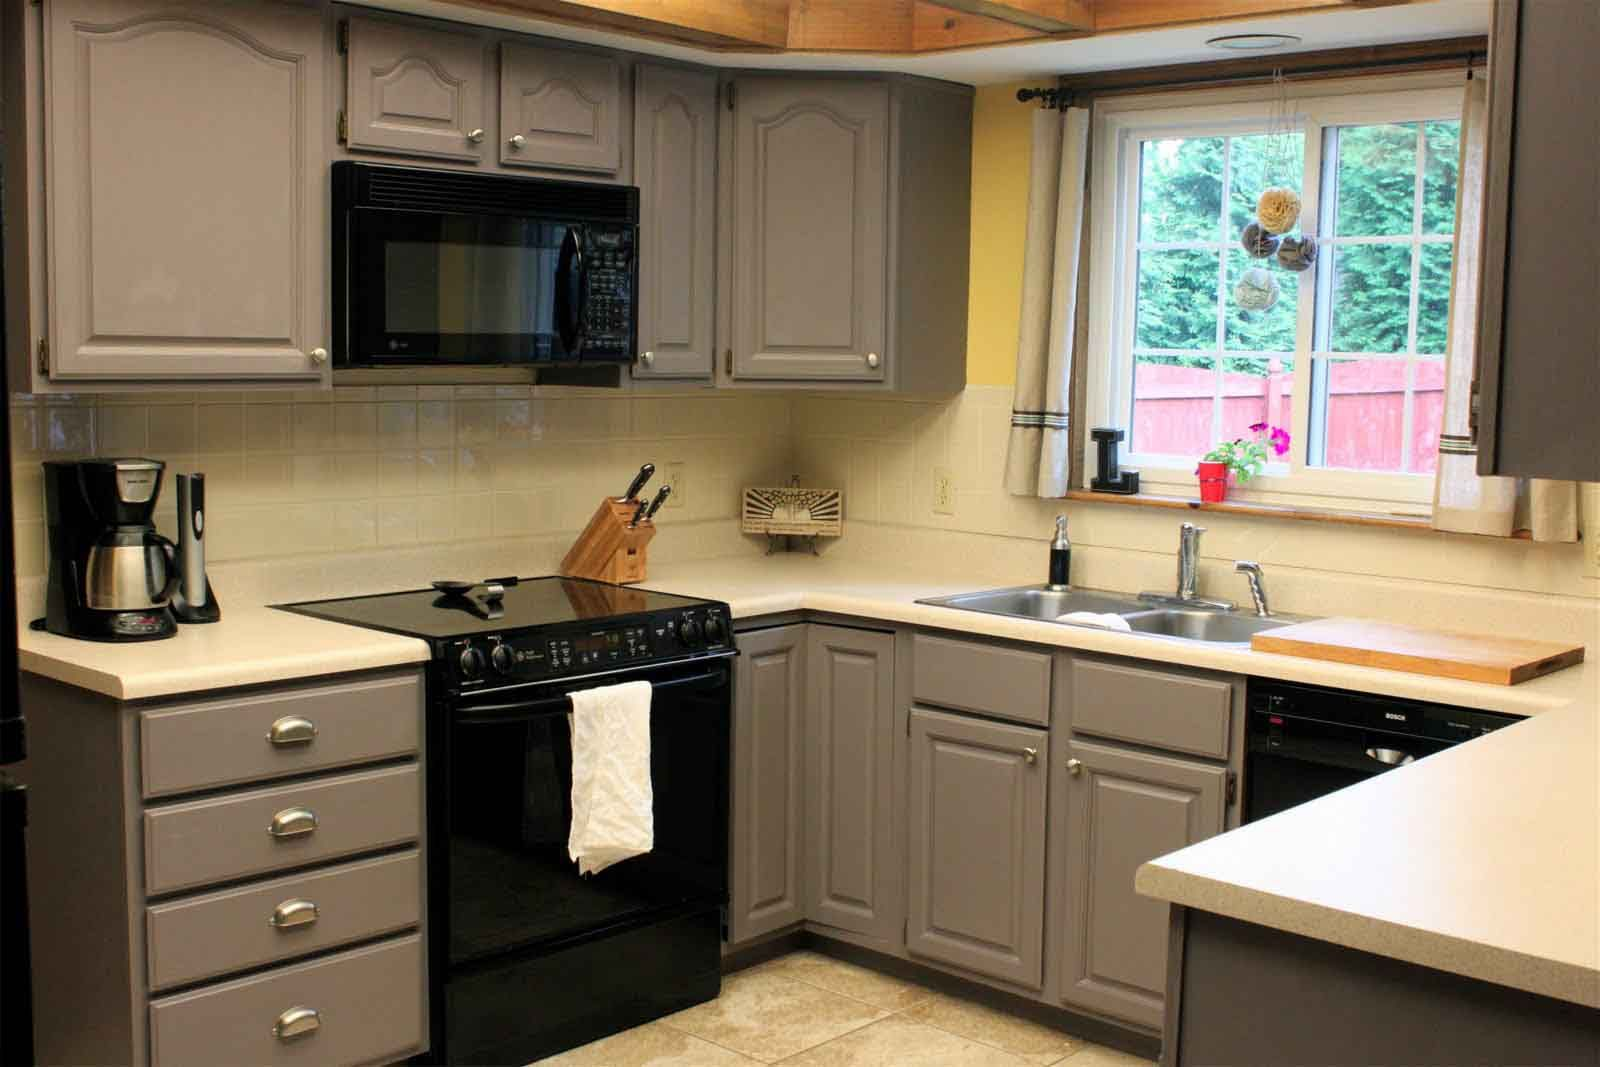 Modren Painting Kitchen Cabinets Brown Guideline To Install File Cabinet  Locks Http Bedroomdecor Throughout Ideas